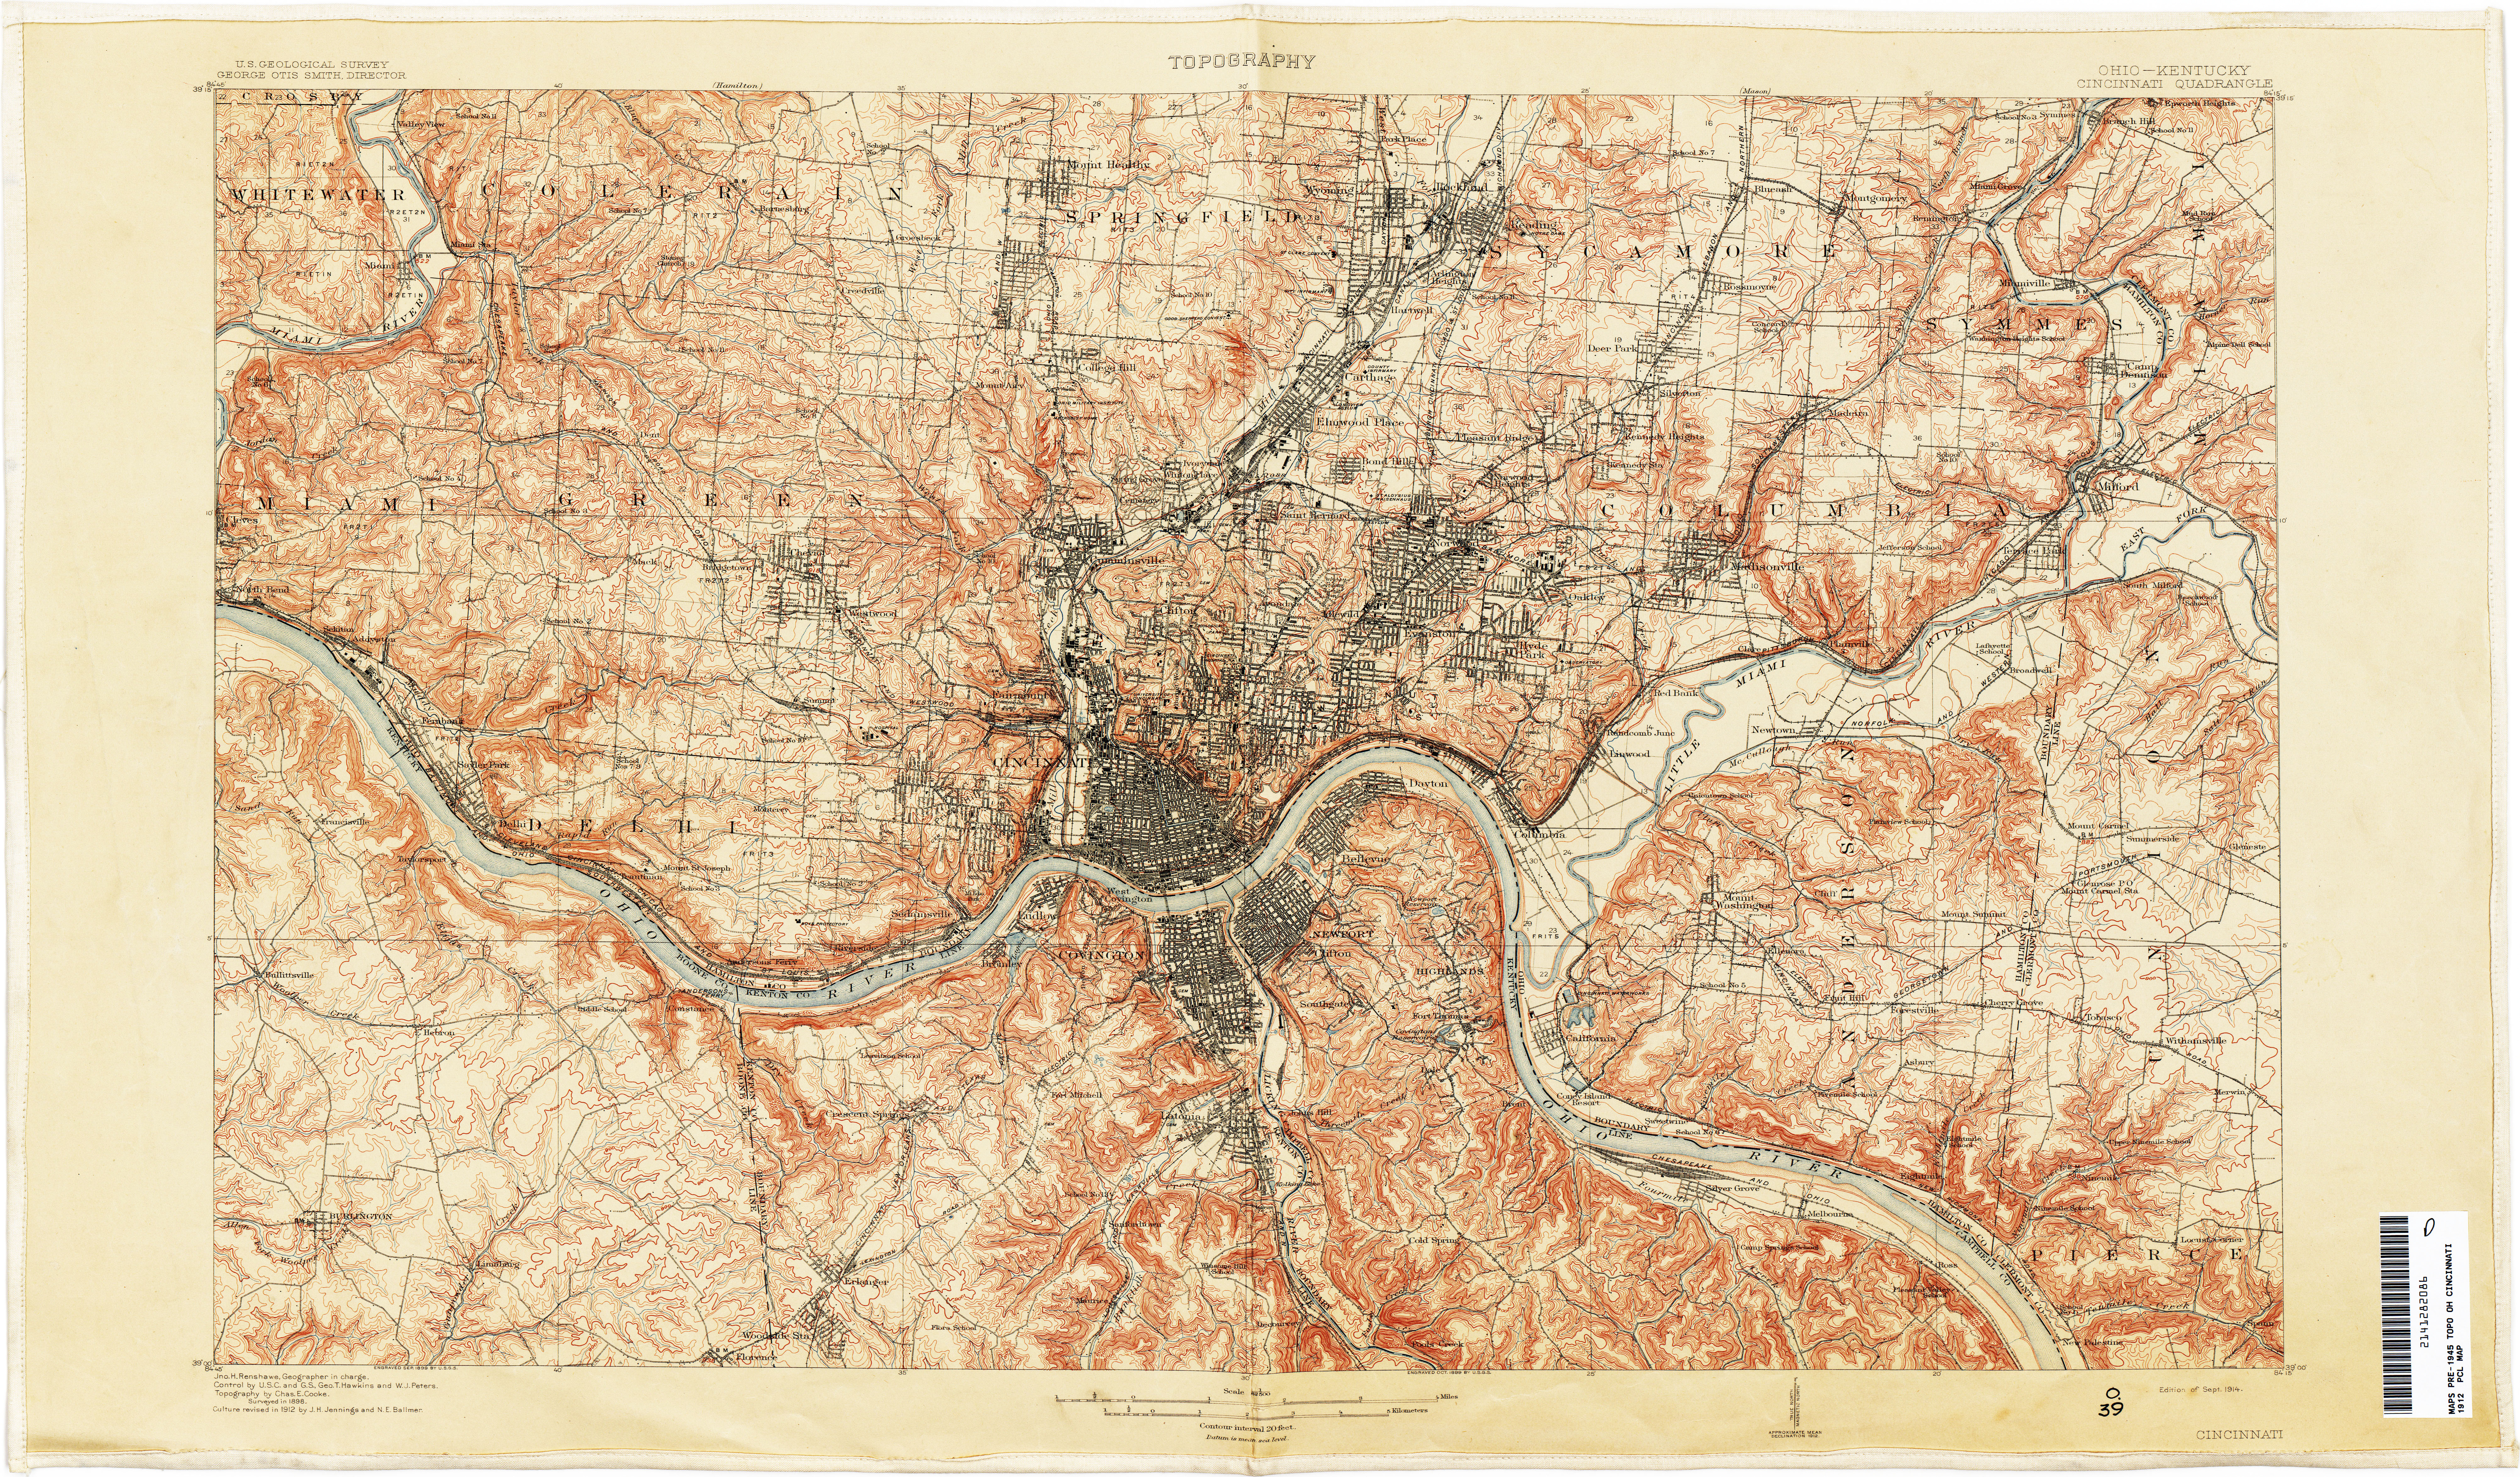 Pennsylvania Historical Topographic Maps - Perry-Castañeda Map ...